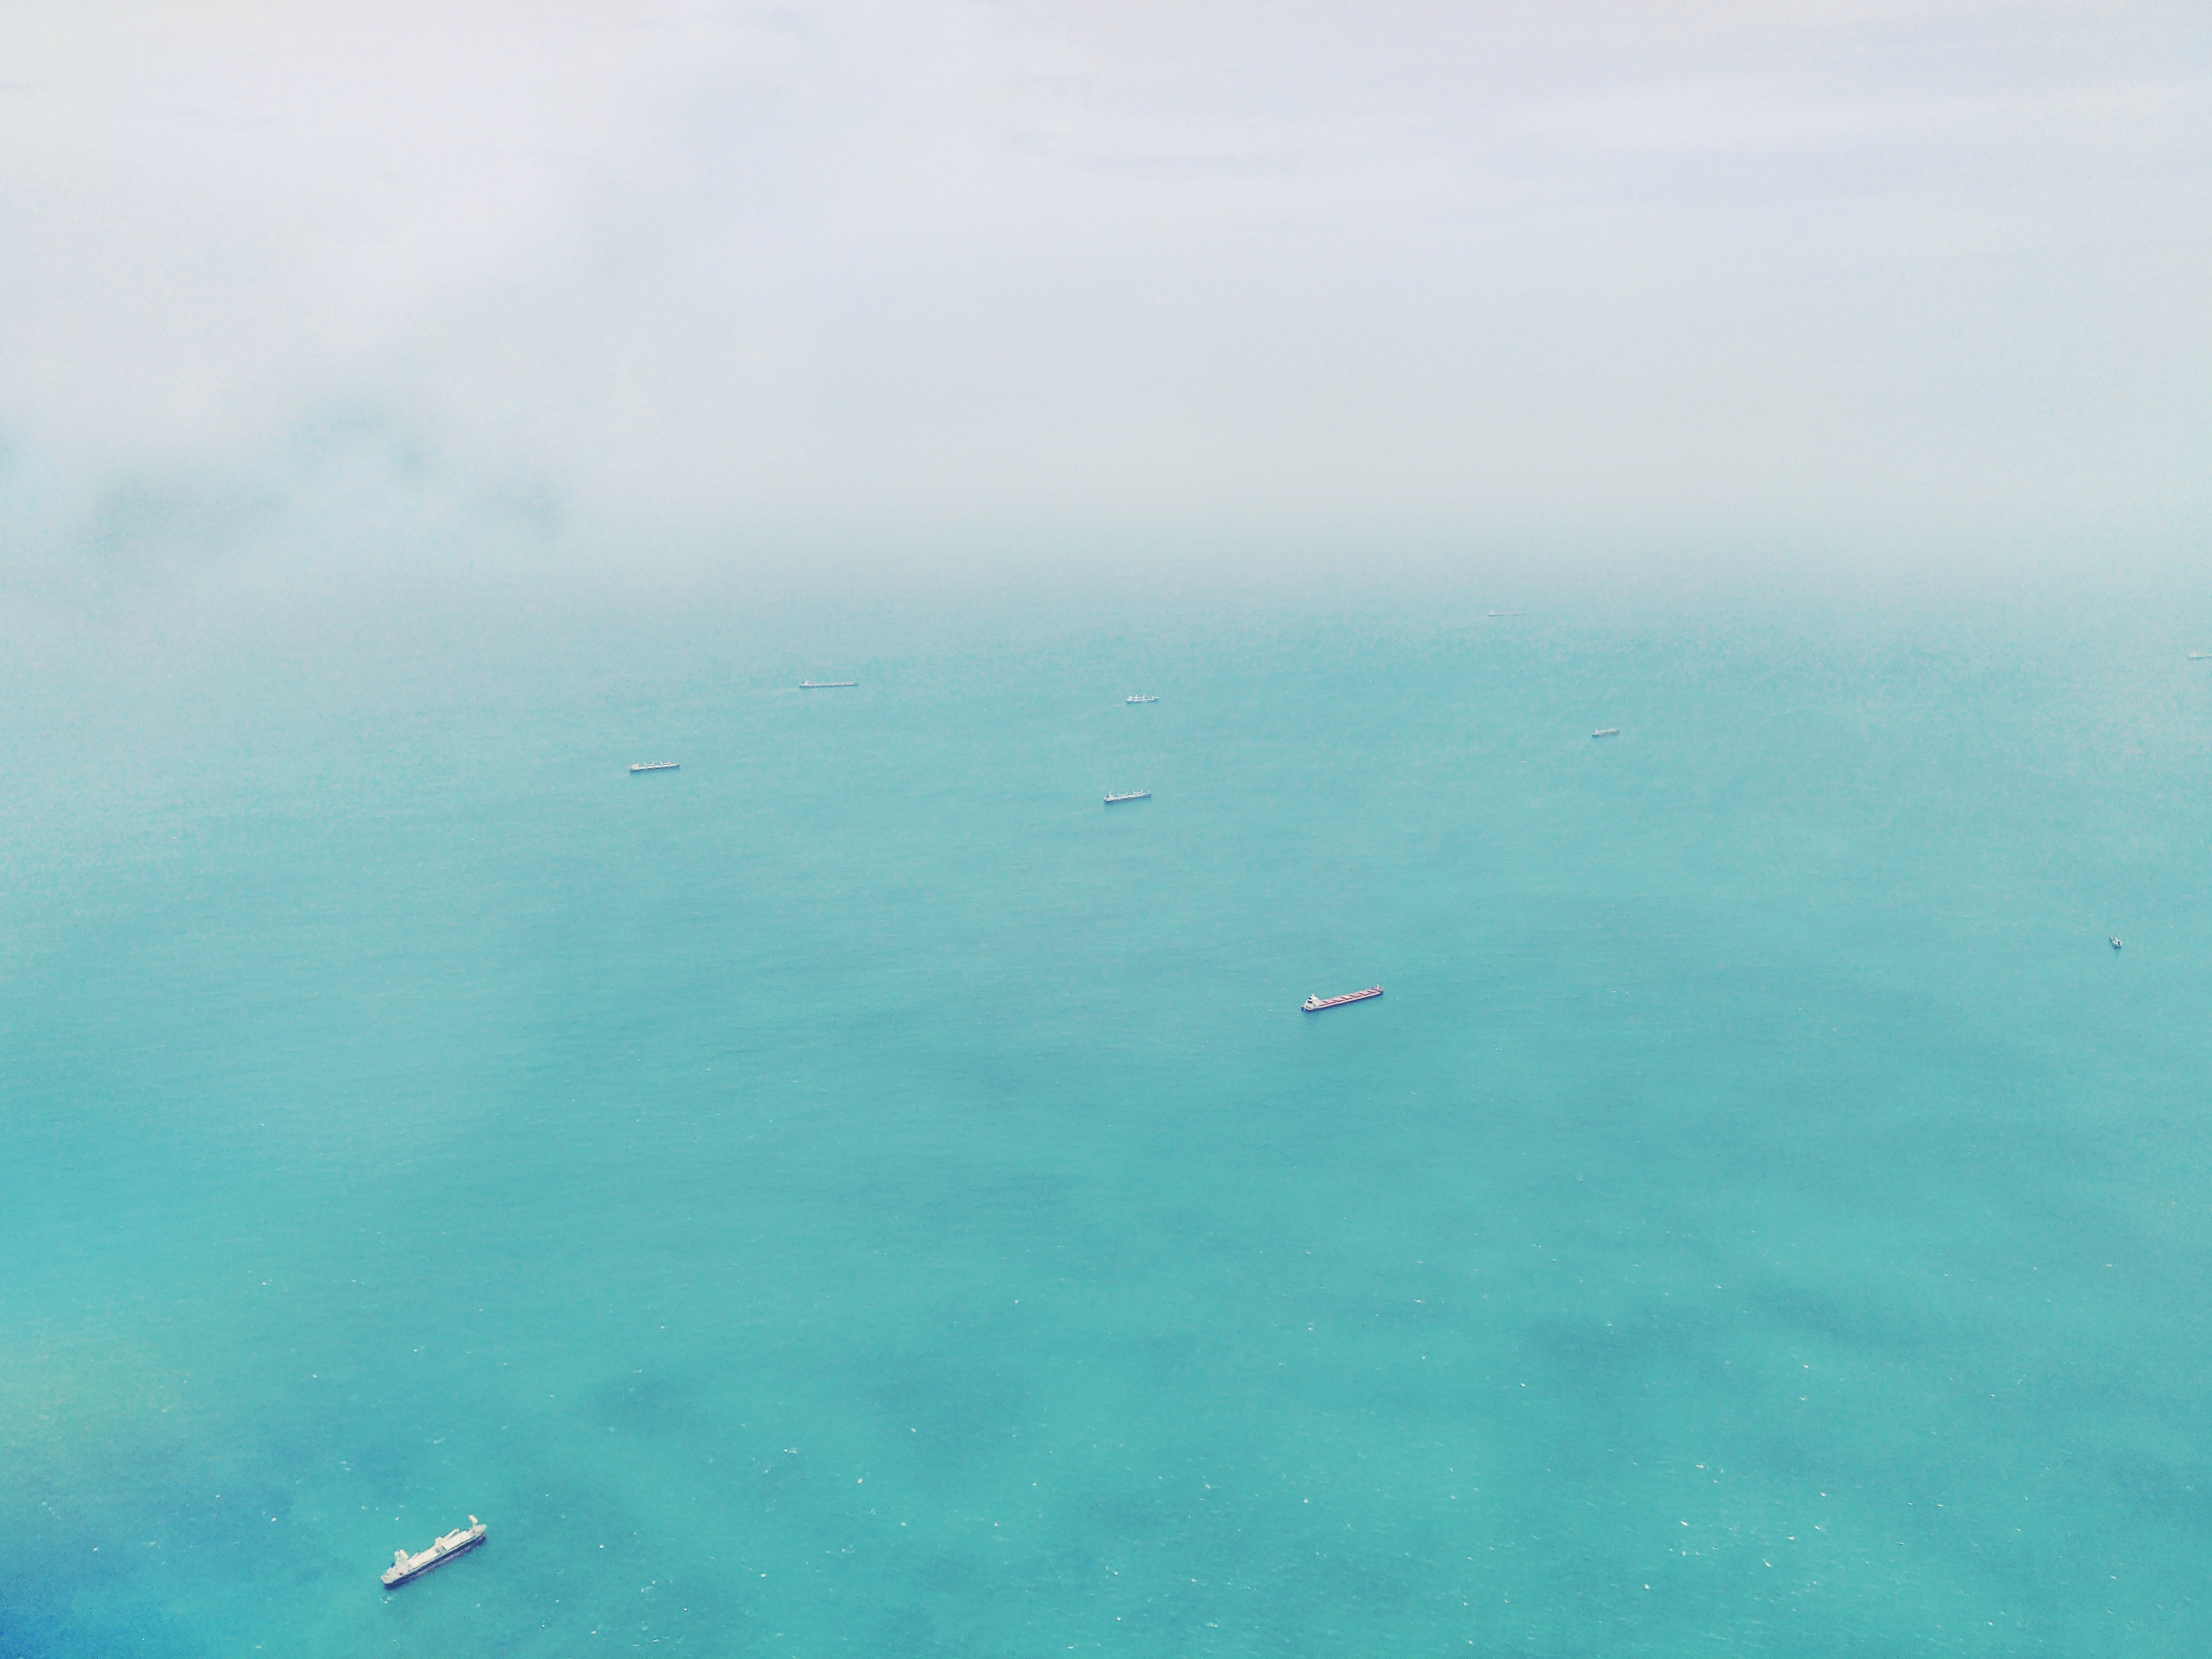 aerial photography of ships on ocean